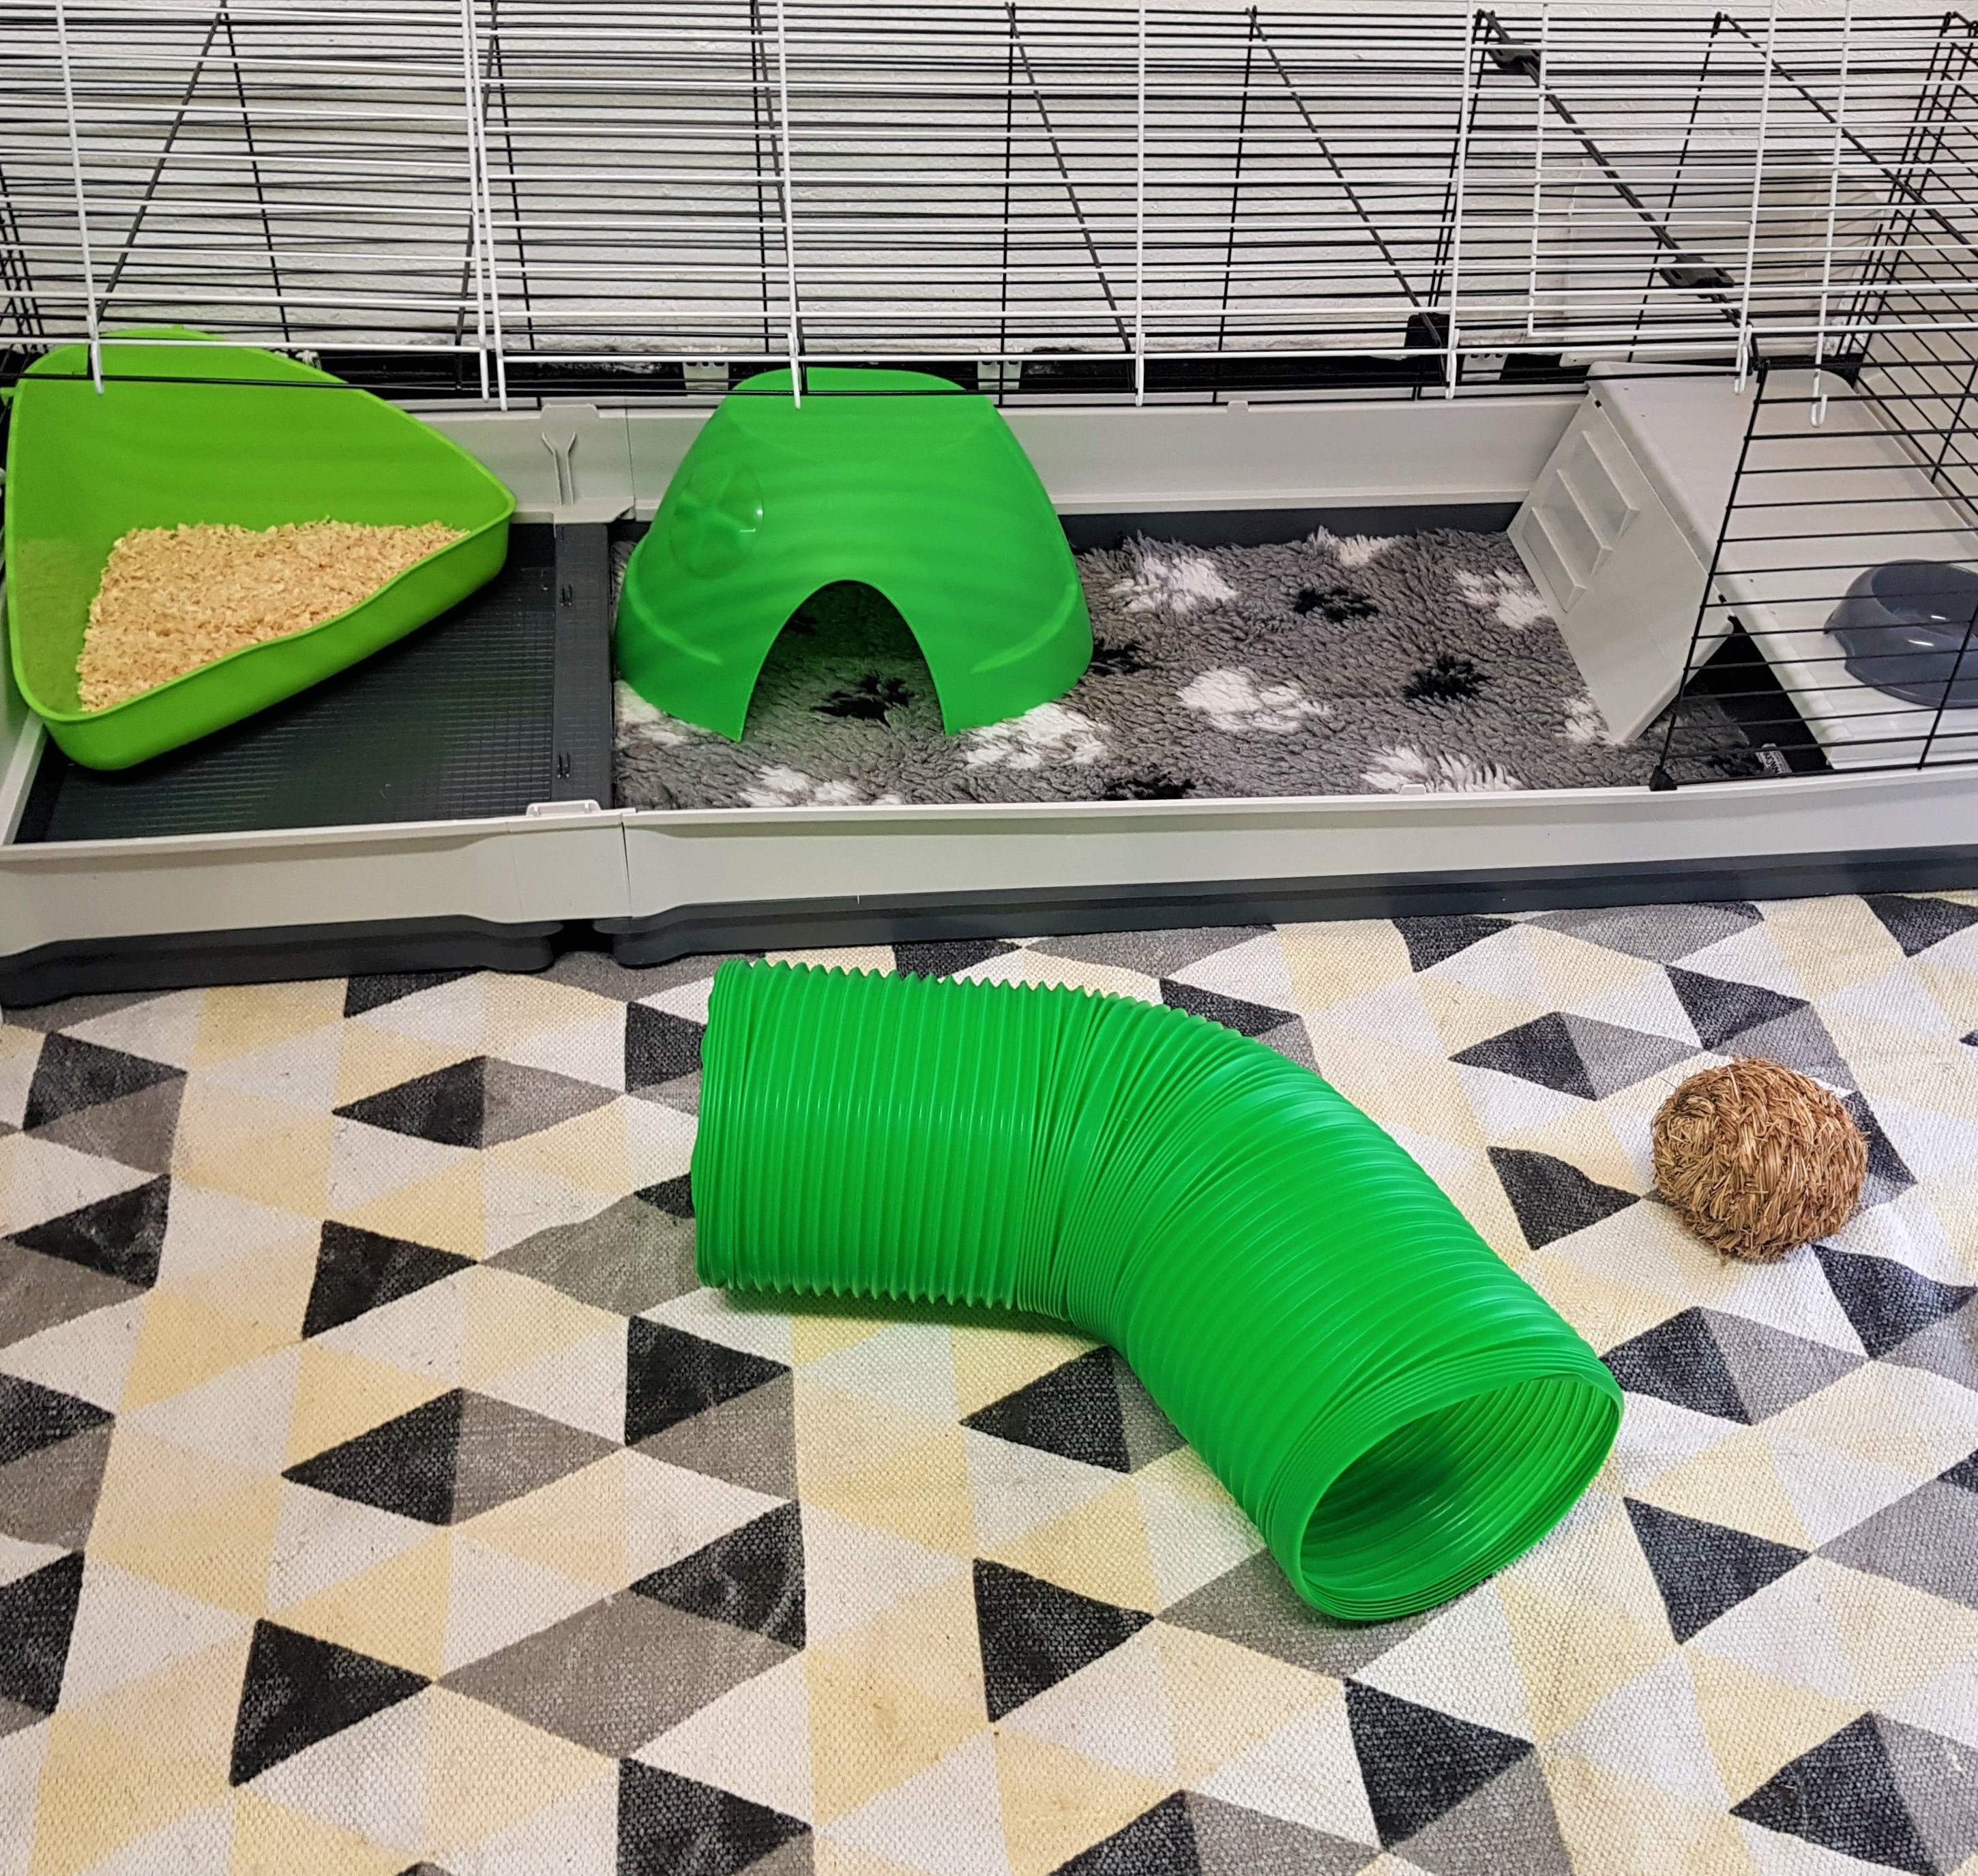 160 cm indoor cage with play pen attached to it